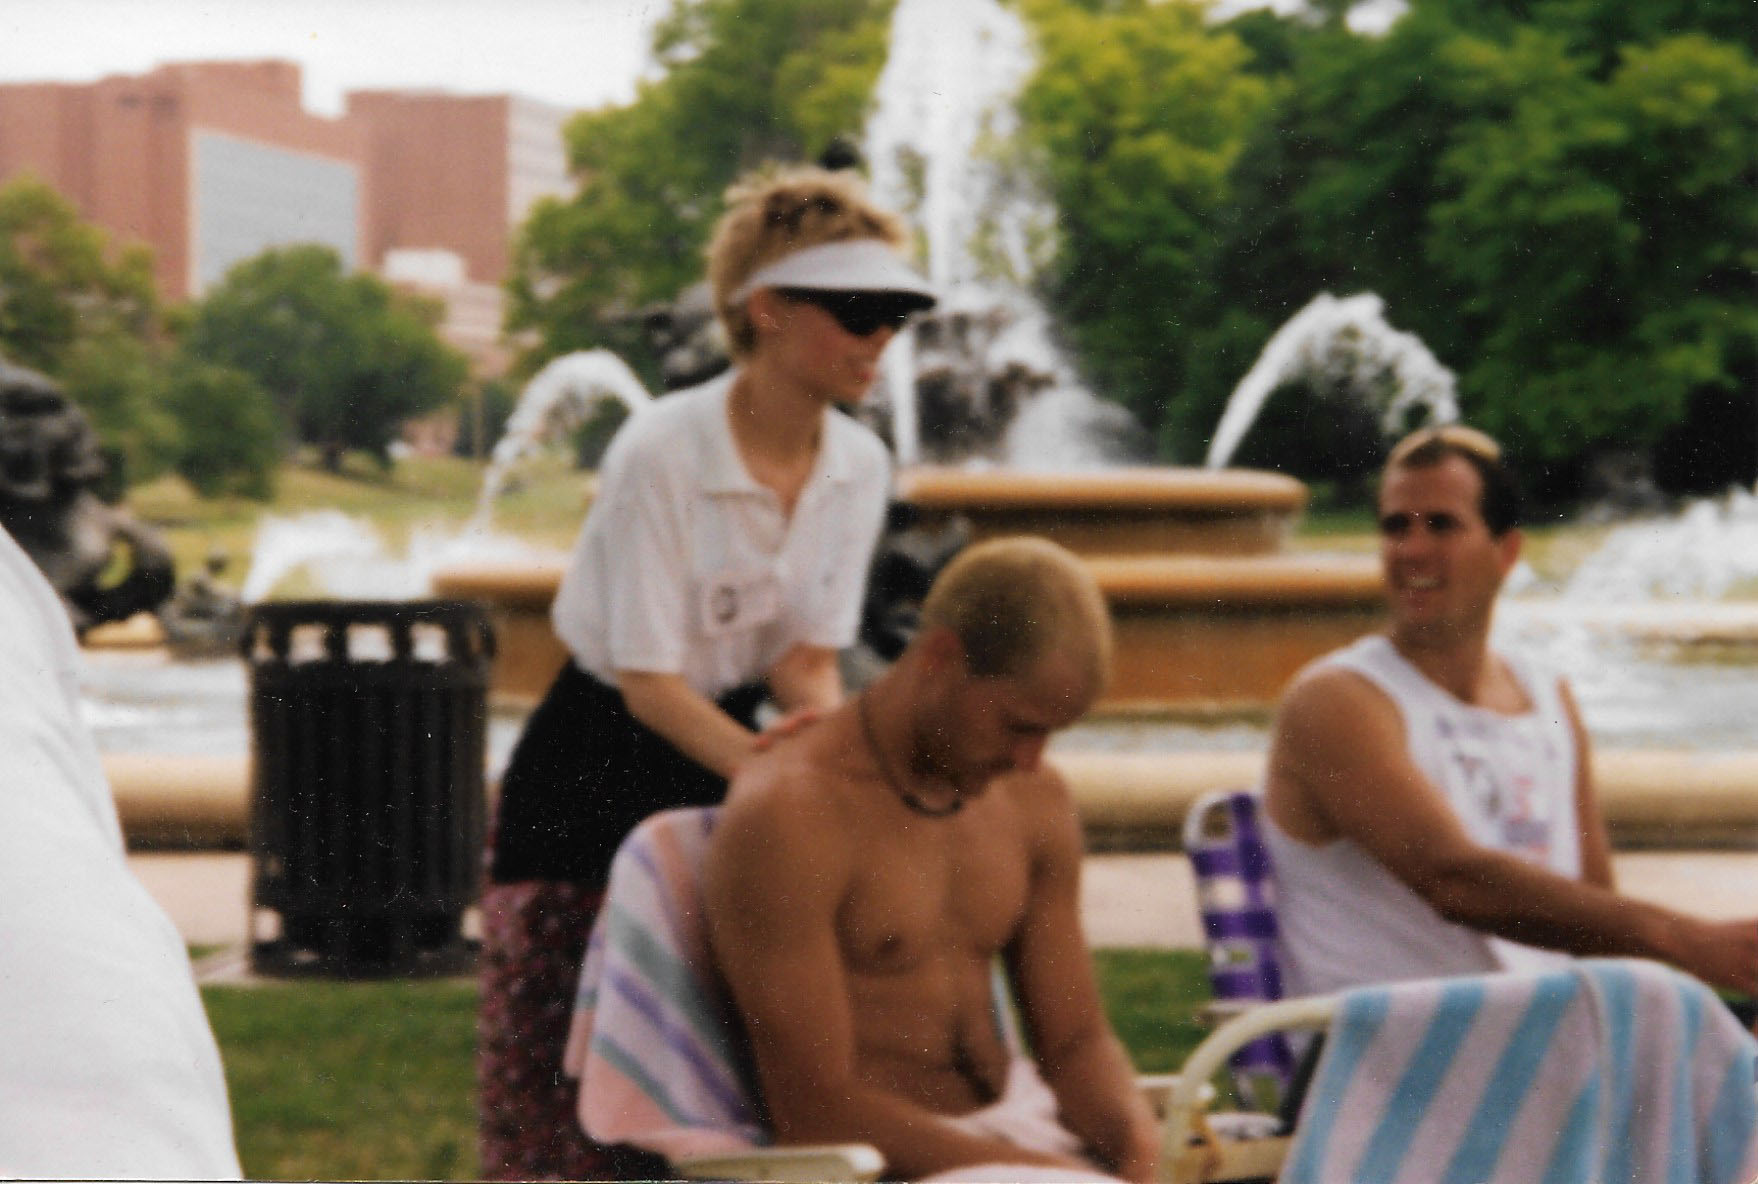 Here is a photo of the owner of Solaris Massage during Massage Awareness Week back in 1997 at Mill Creek Park, KCMO. How 'bout that visor?